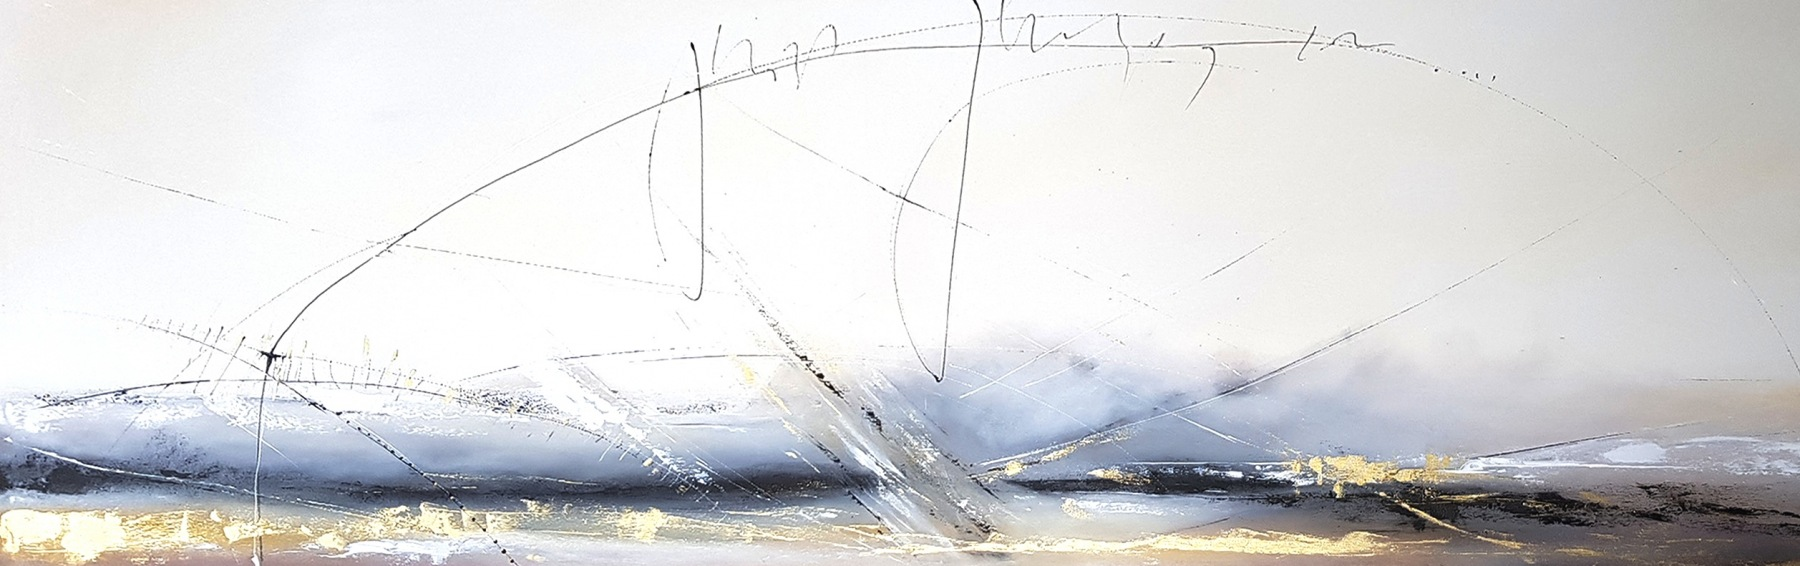 abstrakte-Malerei-mit-dem-Meer-Name-des-Künstlers-Lilija-Keruckaitė-Dirsienė-abstract-painting-with-the-sea.Name-of-the-artist-Painter-Lilija-Keruckaitė-Dirsienė